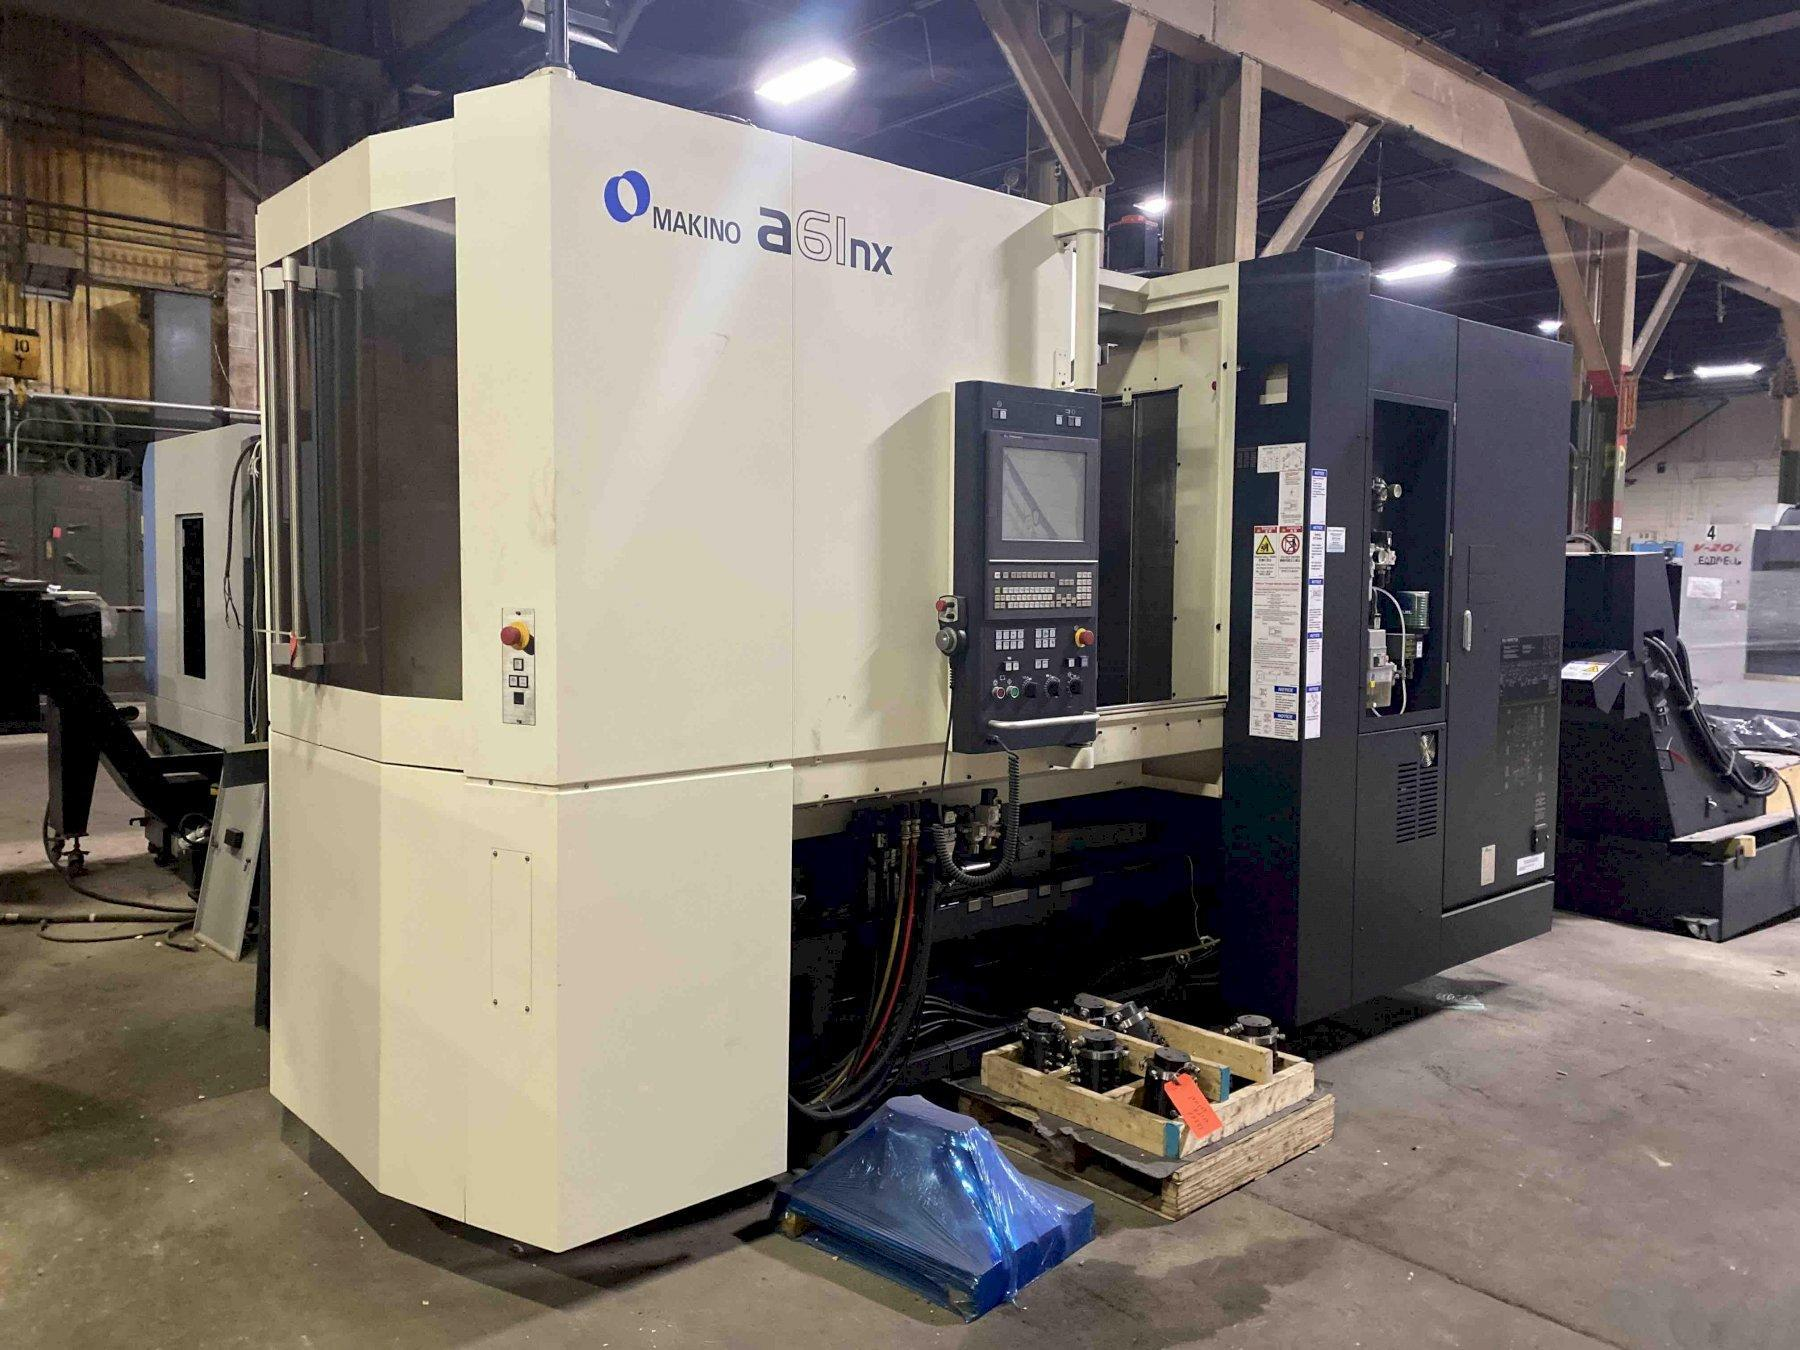 Makino A61NX CNC Horizontal Machining Center, Fanuc Pro 6 Control, 19.7